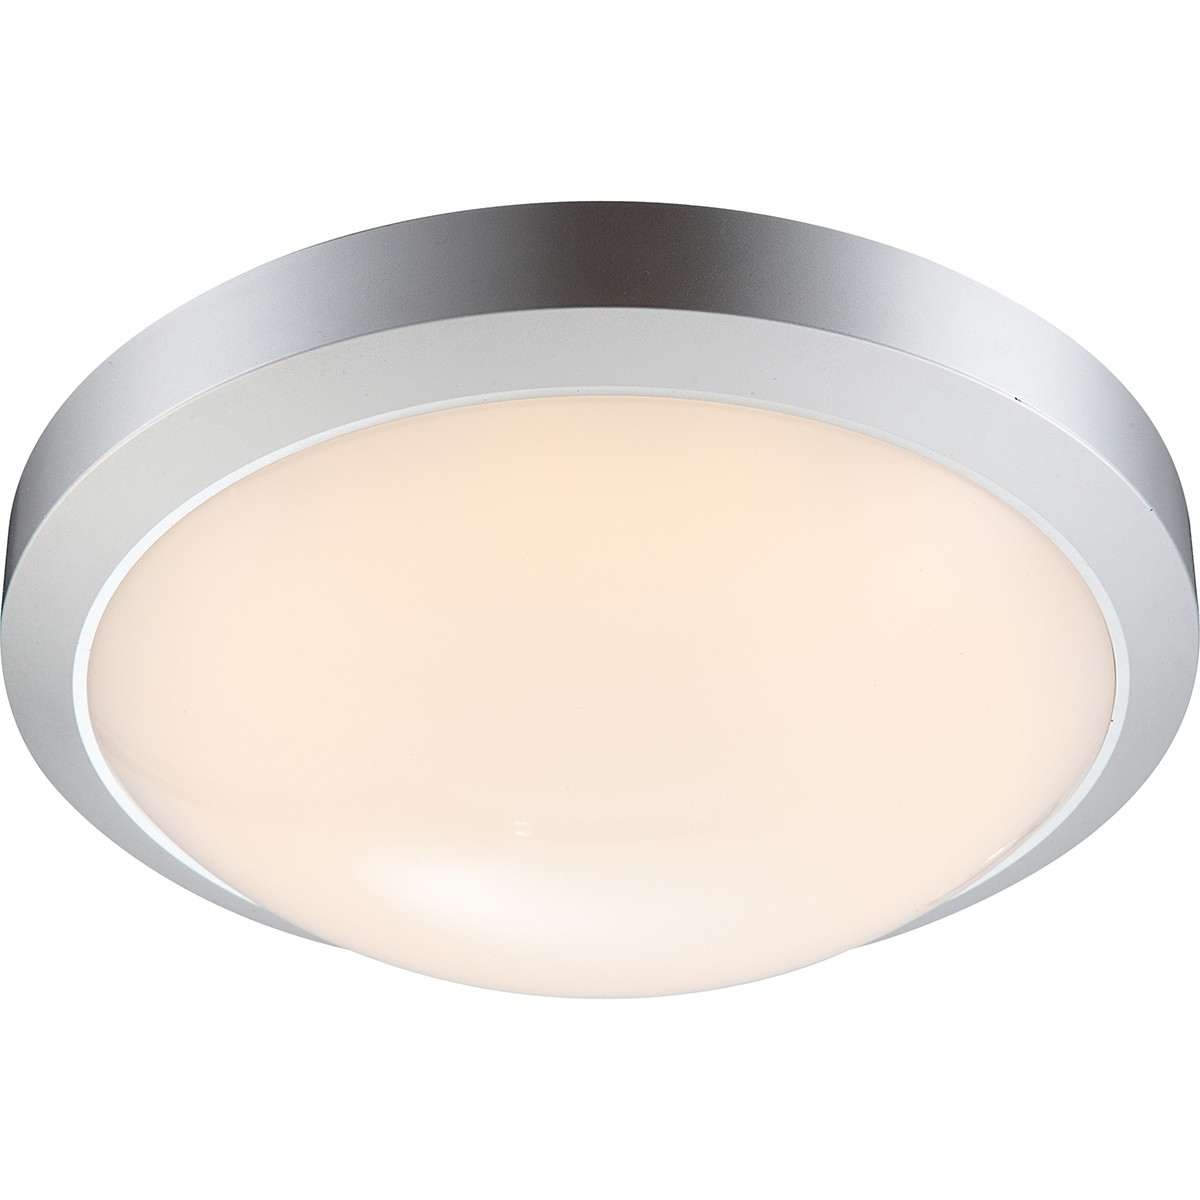 Outdoor Ceiling Led Lights Inside Latest Led Outdoor Ceiling Light , John Globo 32107 – Big Selection Of Lights (View 7 of 20)